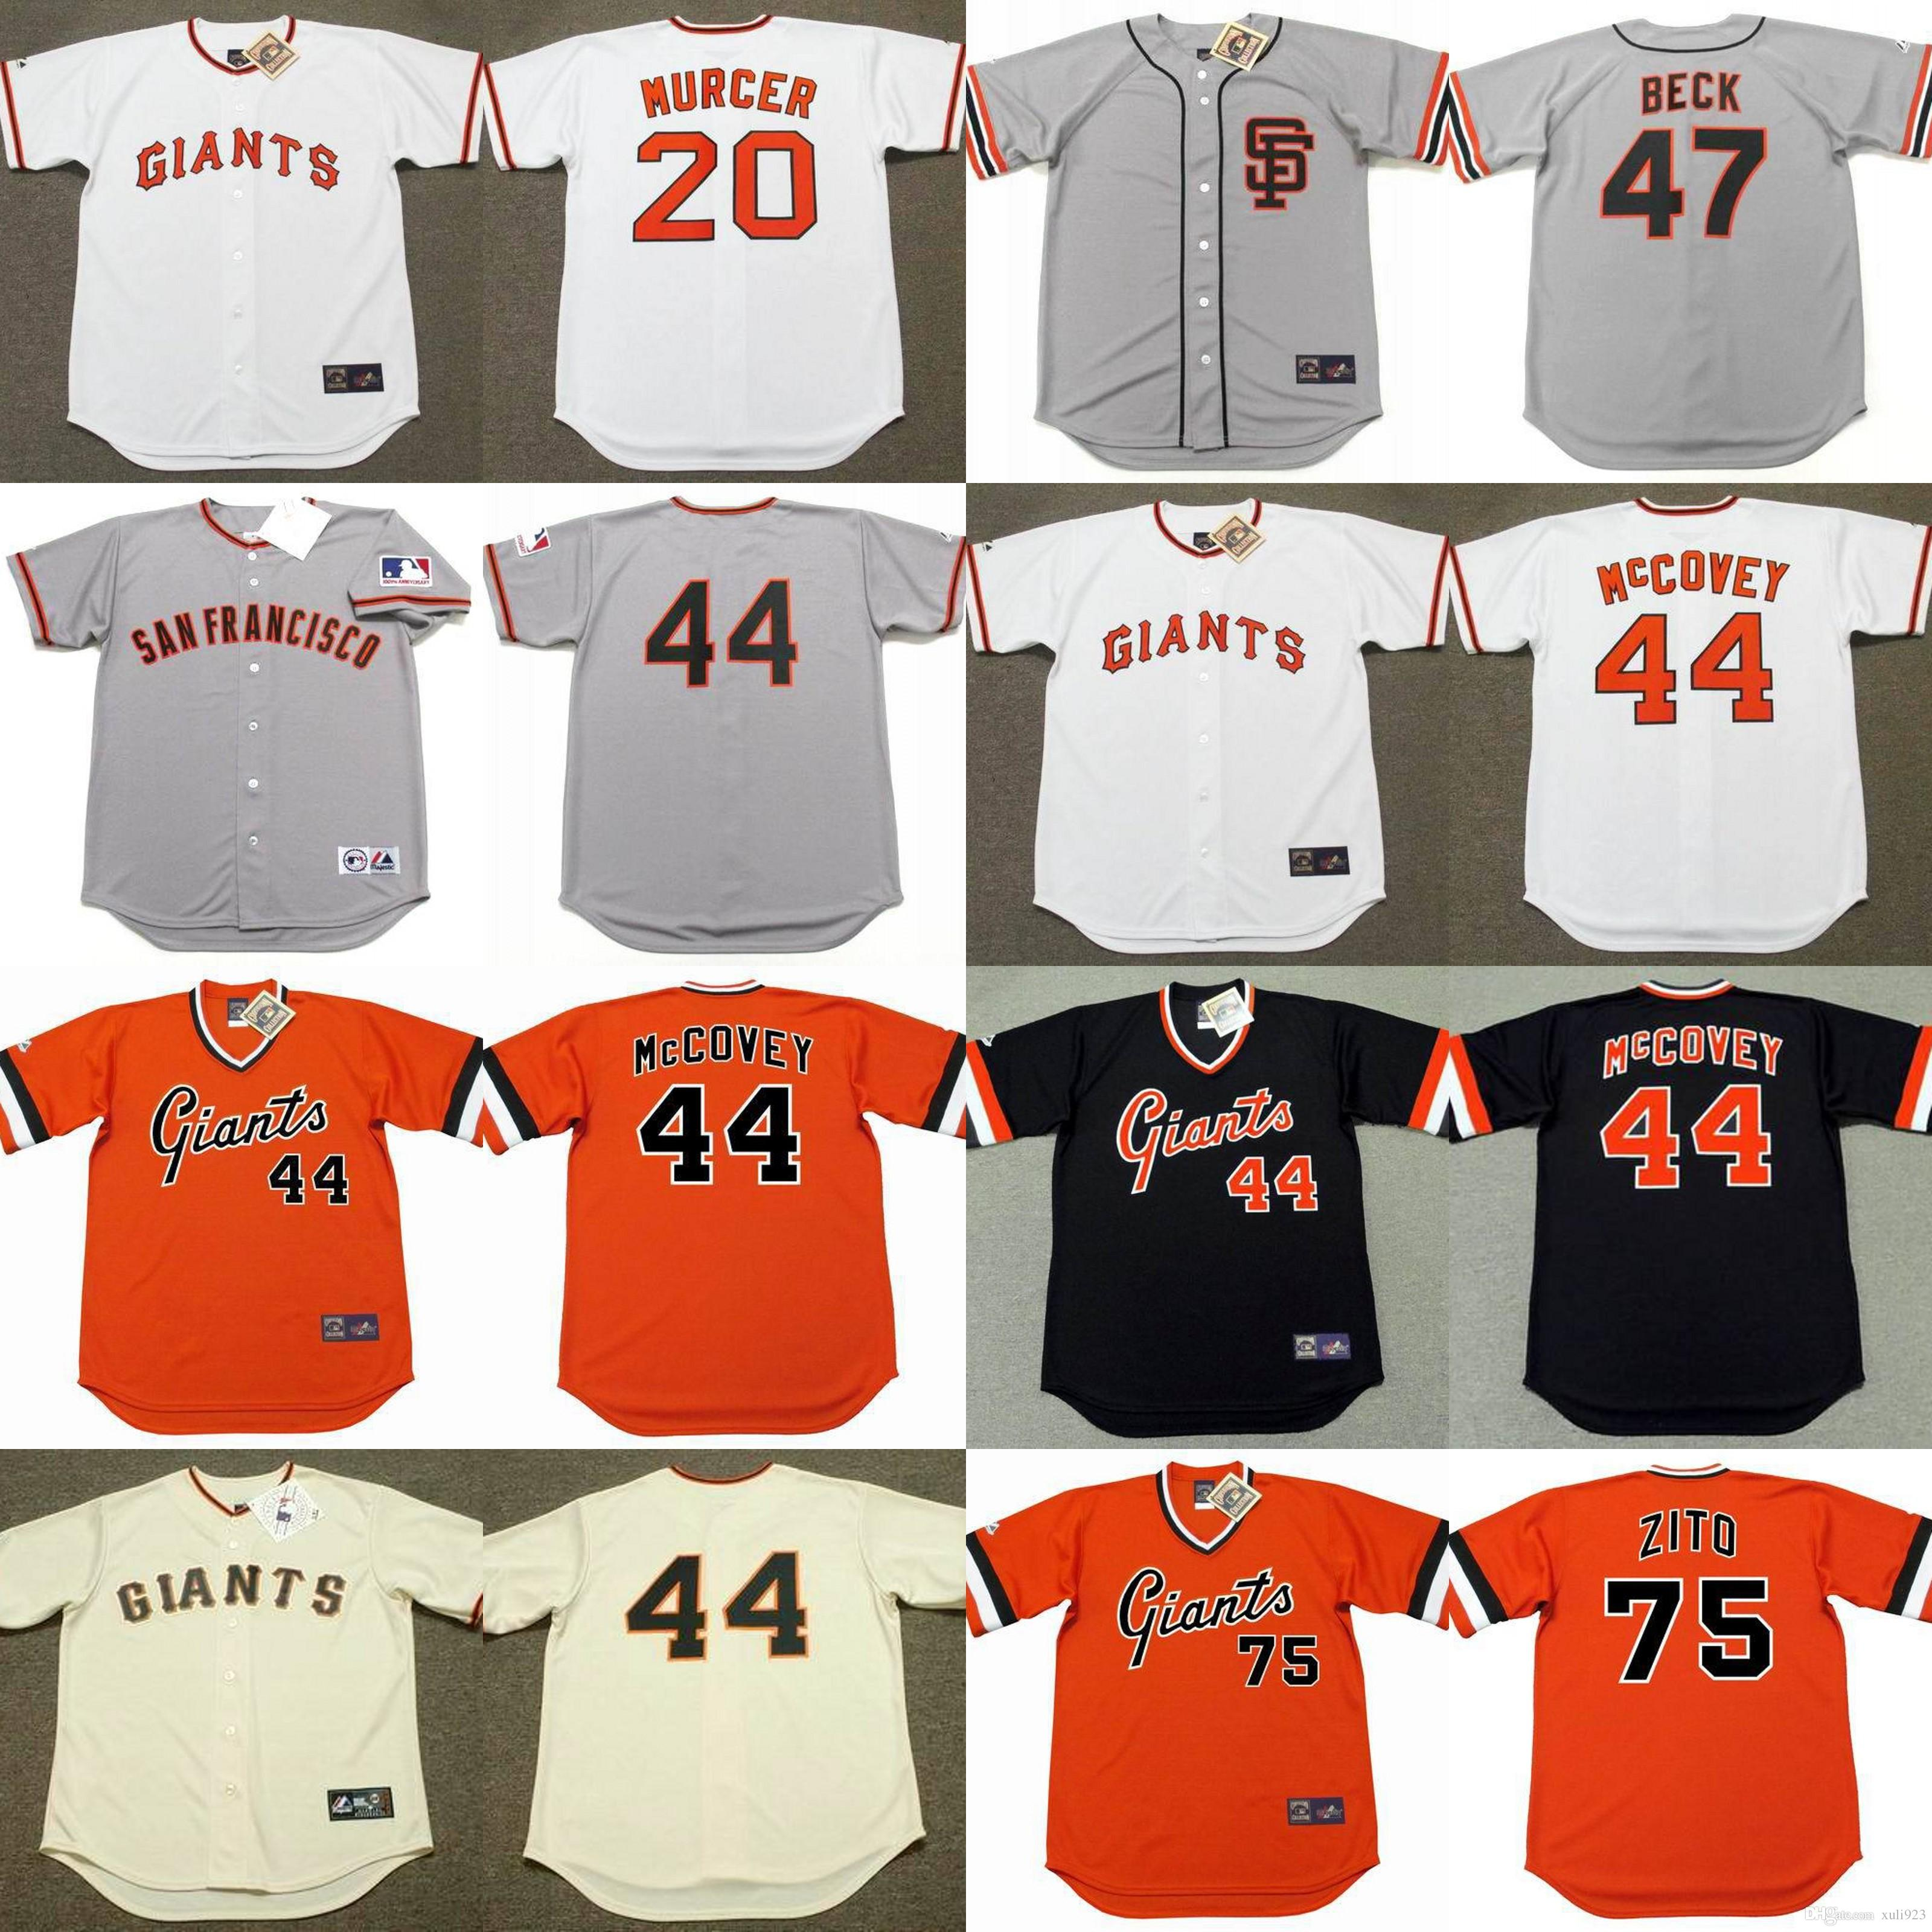 new concept c794a 51ded 44 willie mccovey jersey events